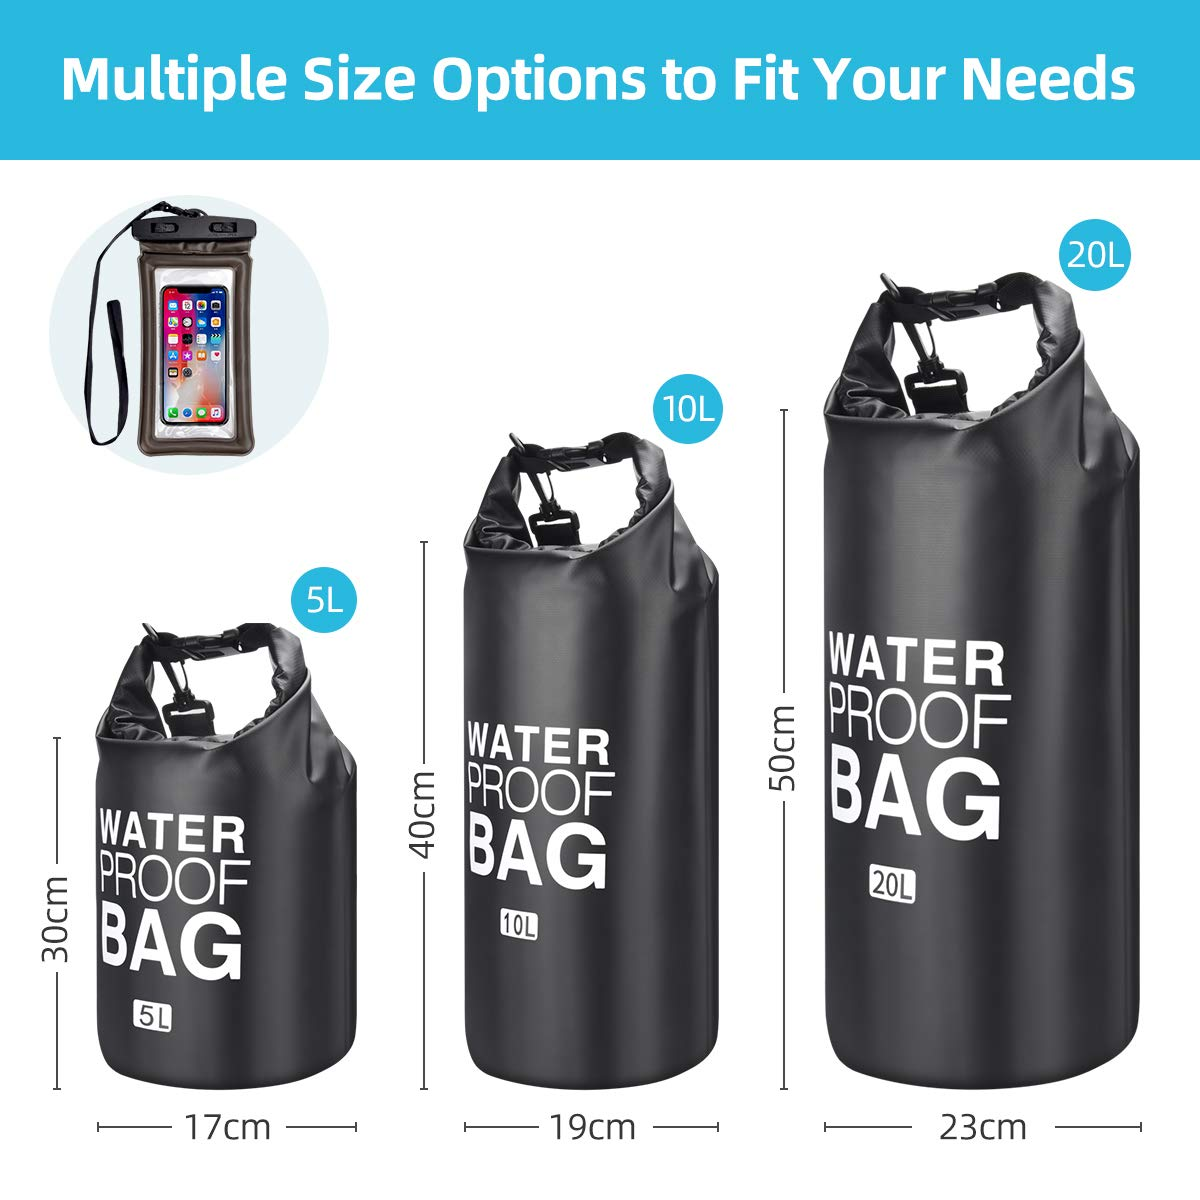 Trentixel Waterproof Dry Bags, Floating Dry Sack with Detachable Shoulder Strap, 5L/10L/20L Large Dry Bag for Fishing, Kayaking, Surfing, Rafting, Hiking and Camping with Waterproof Phone Case